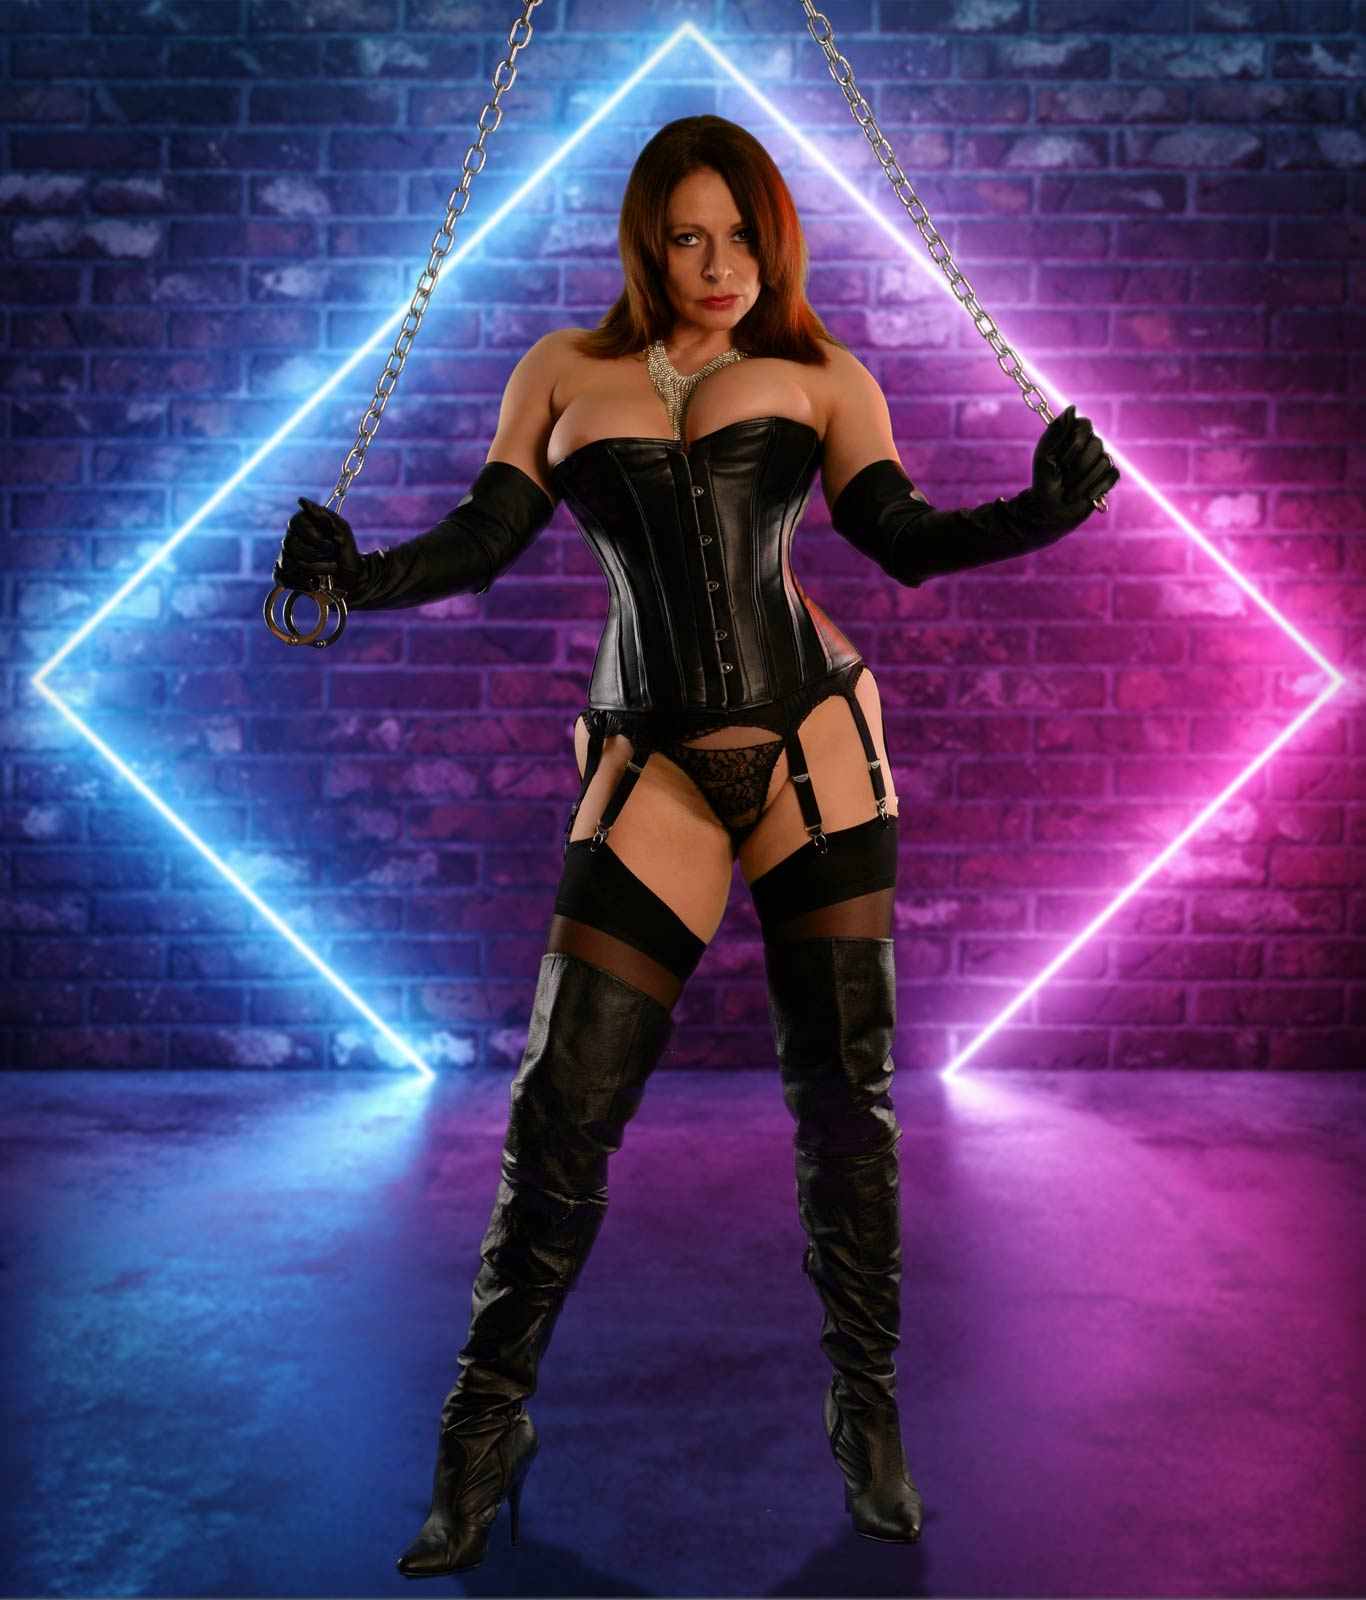 Mistress Carly will milk your submissive cock dry | Book a session now